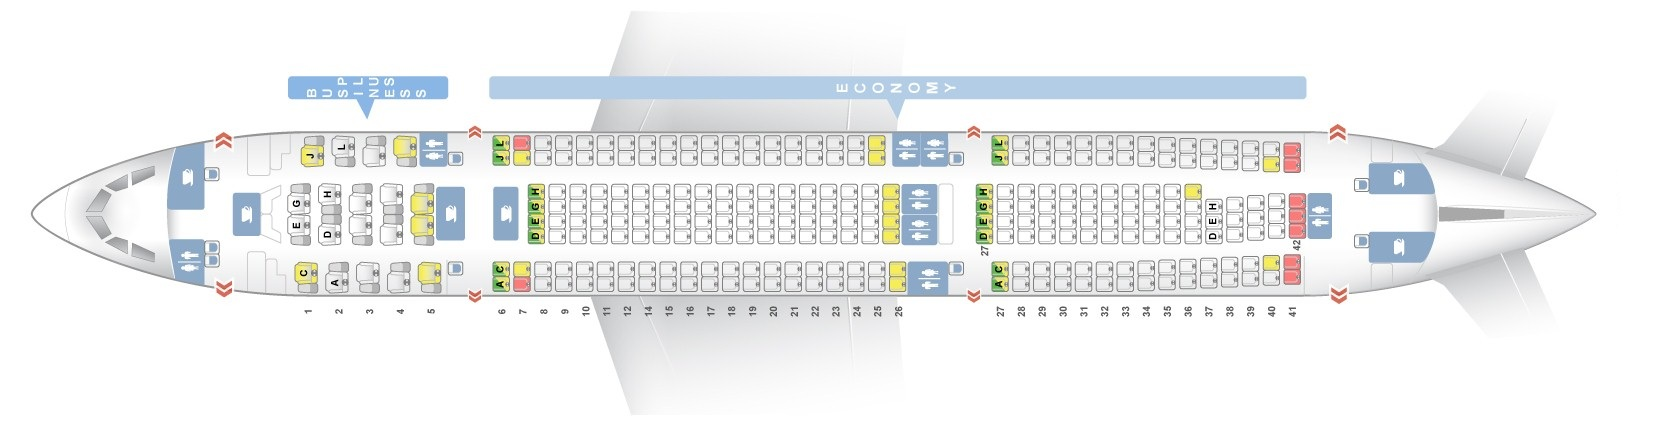 Seat map Airbus A330-200 Iberia. Best seats in the plane